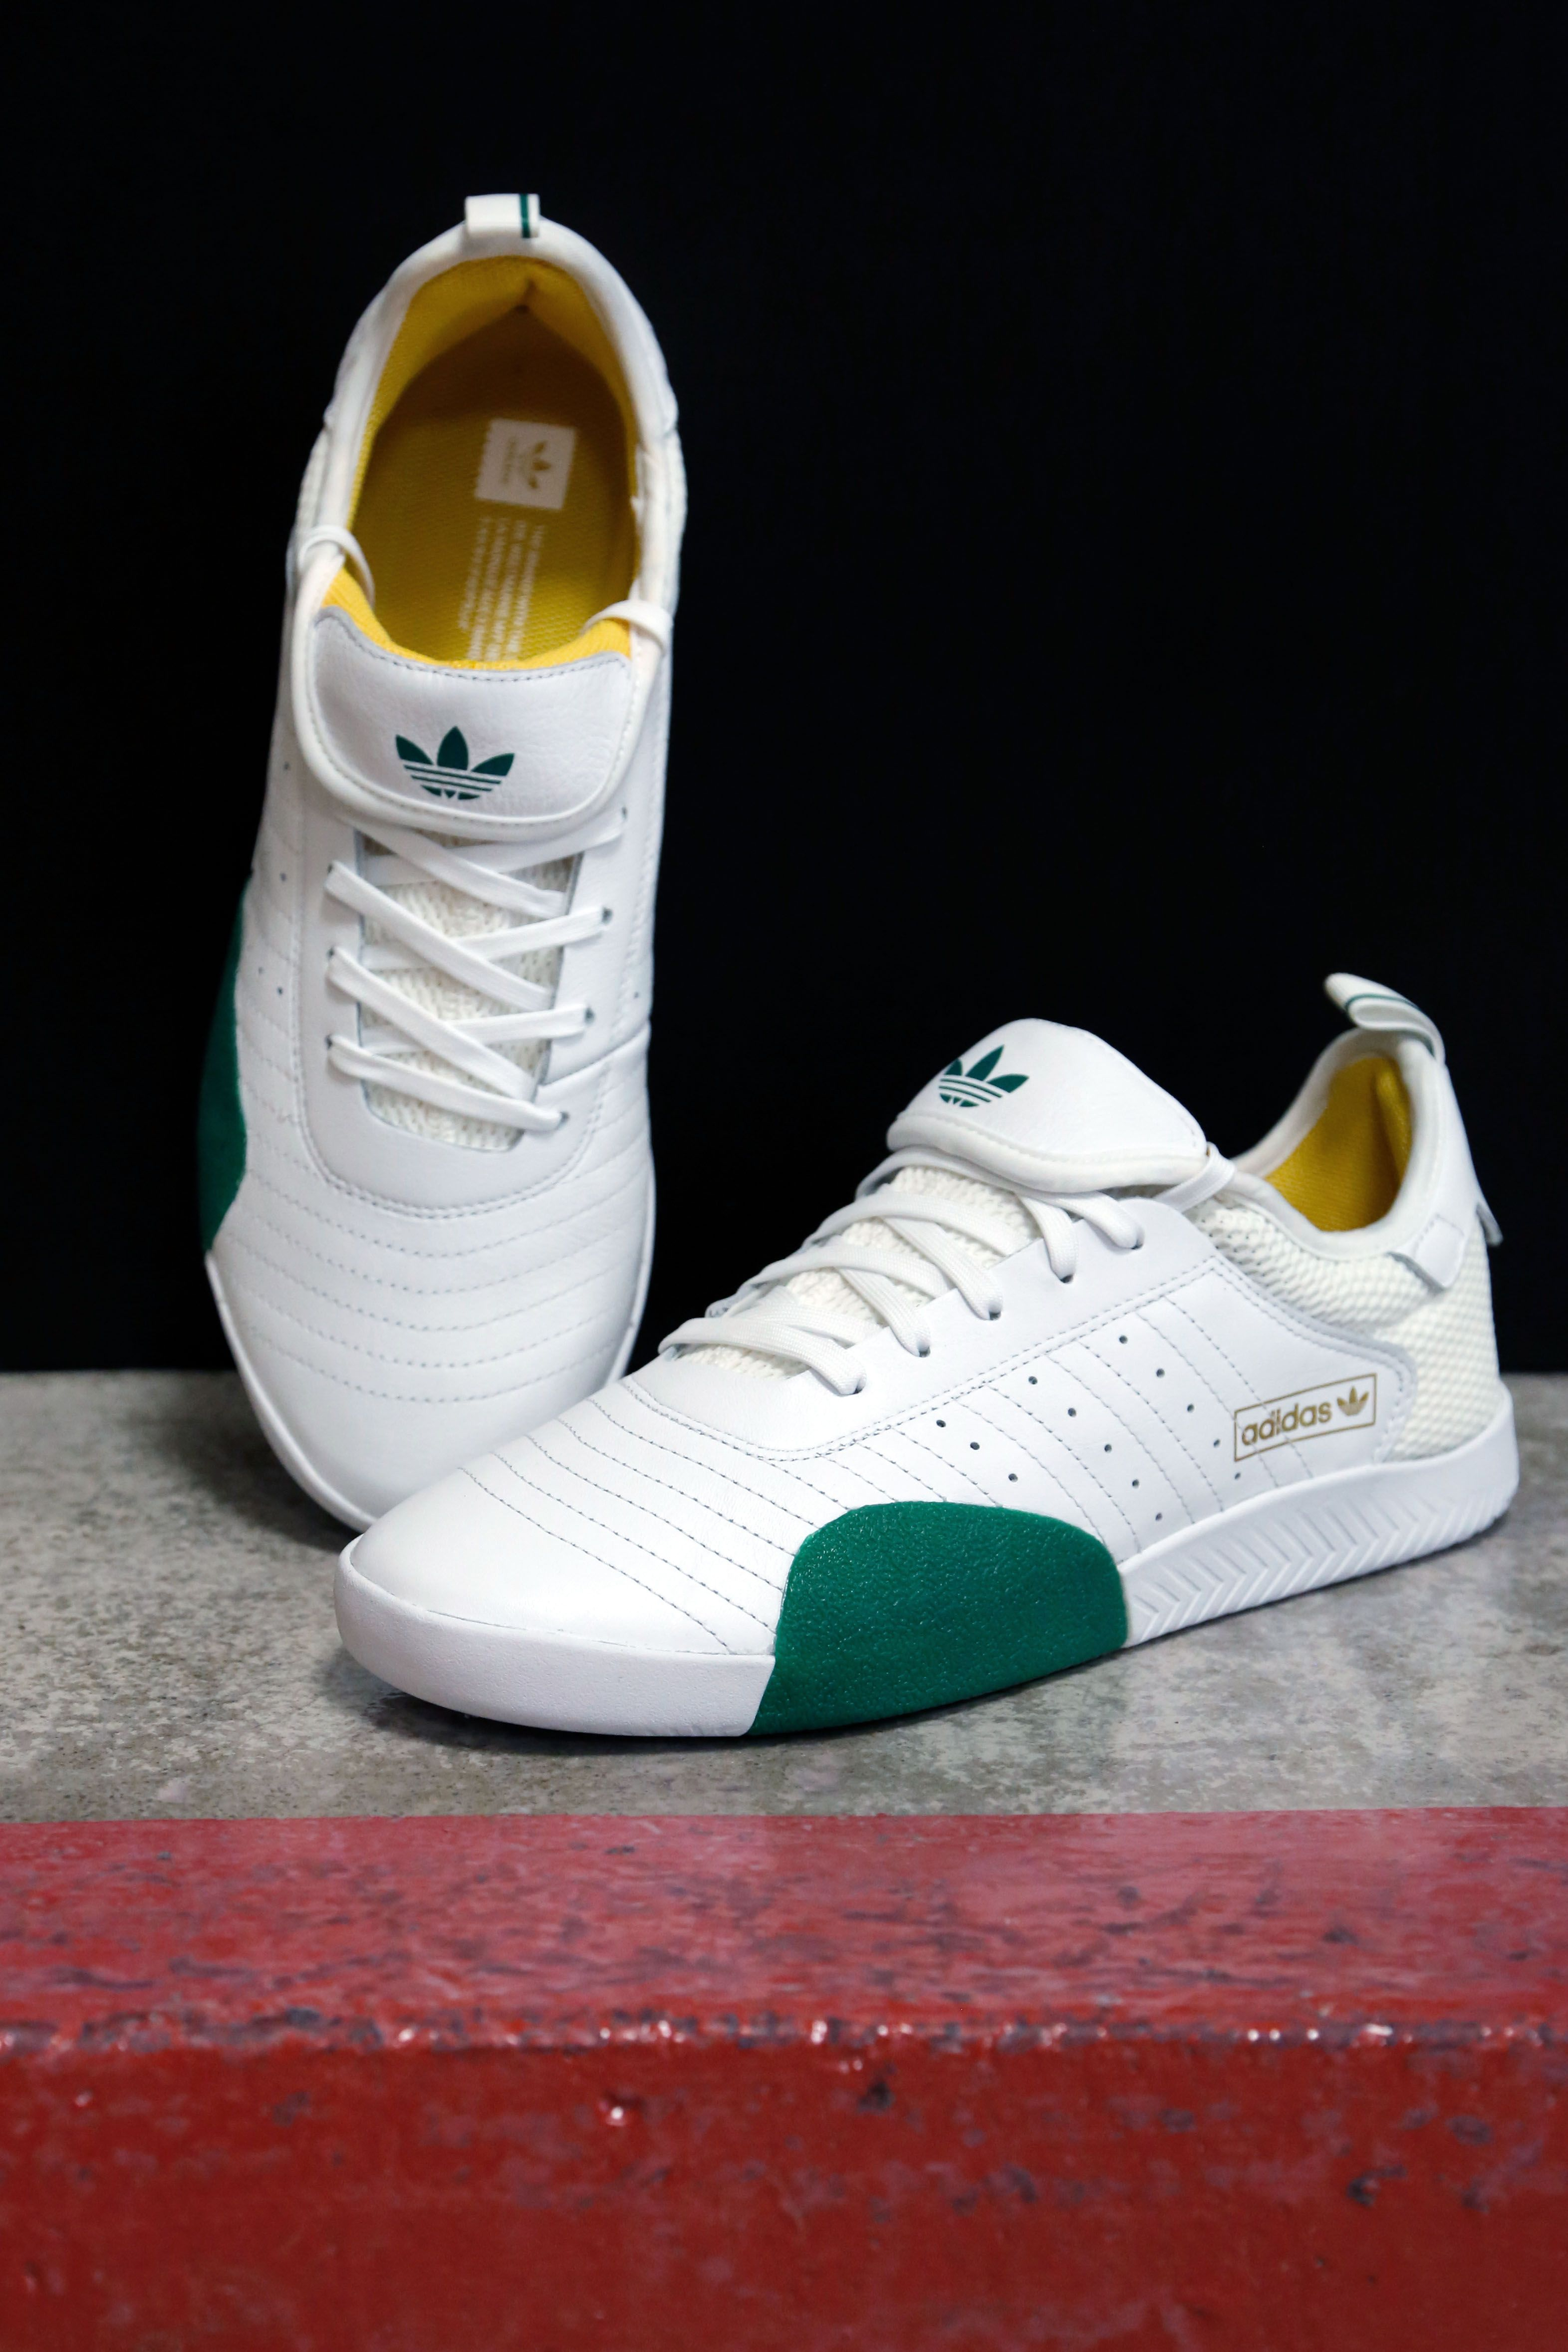 wholesale dealer b5012 56498 The adidas Skateboarding 3ST.003 according to Na-Kel Smiths vision. Now  available! adidasSkateboarding skatedeluxe SK8DLX